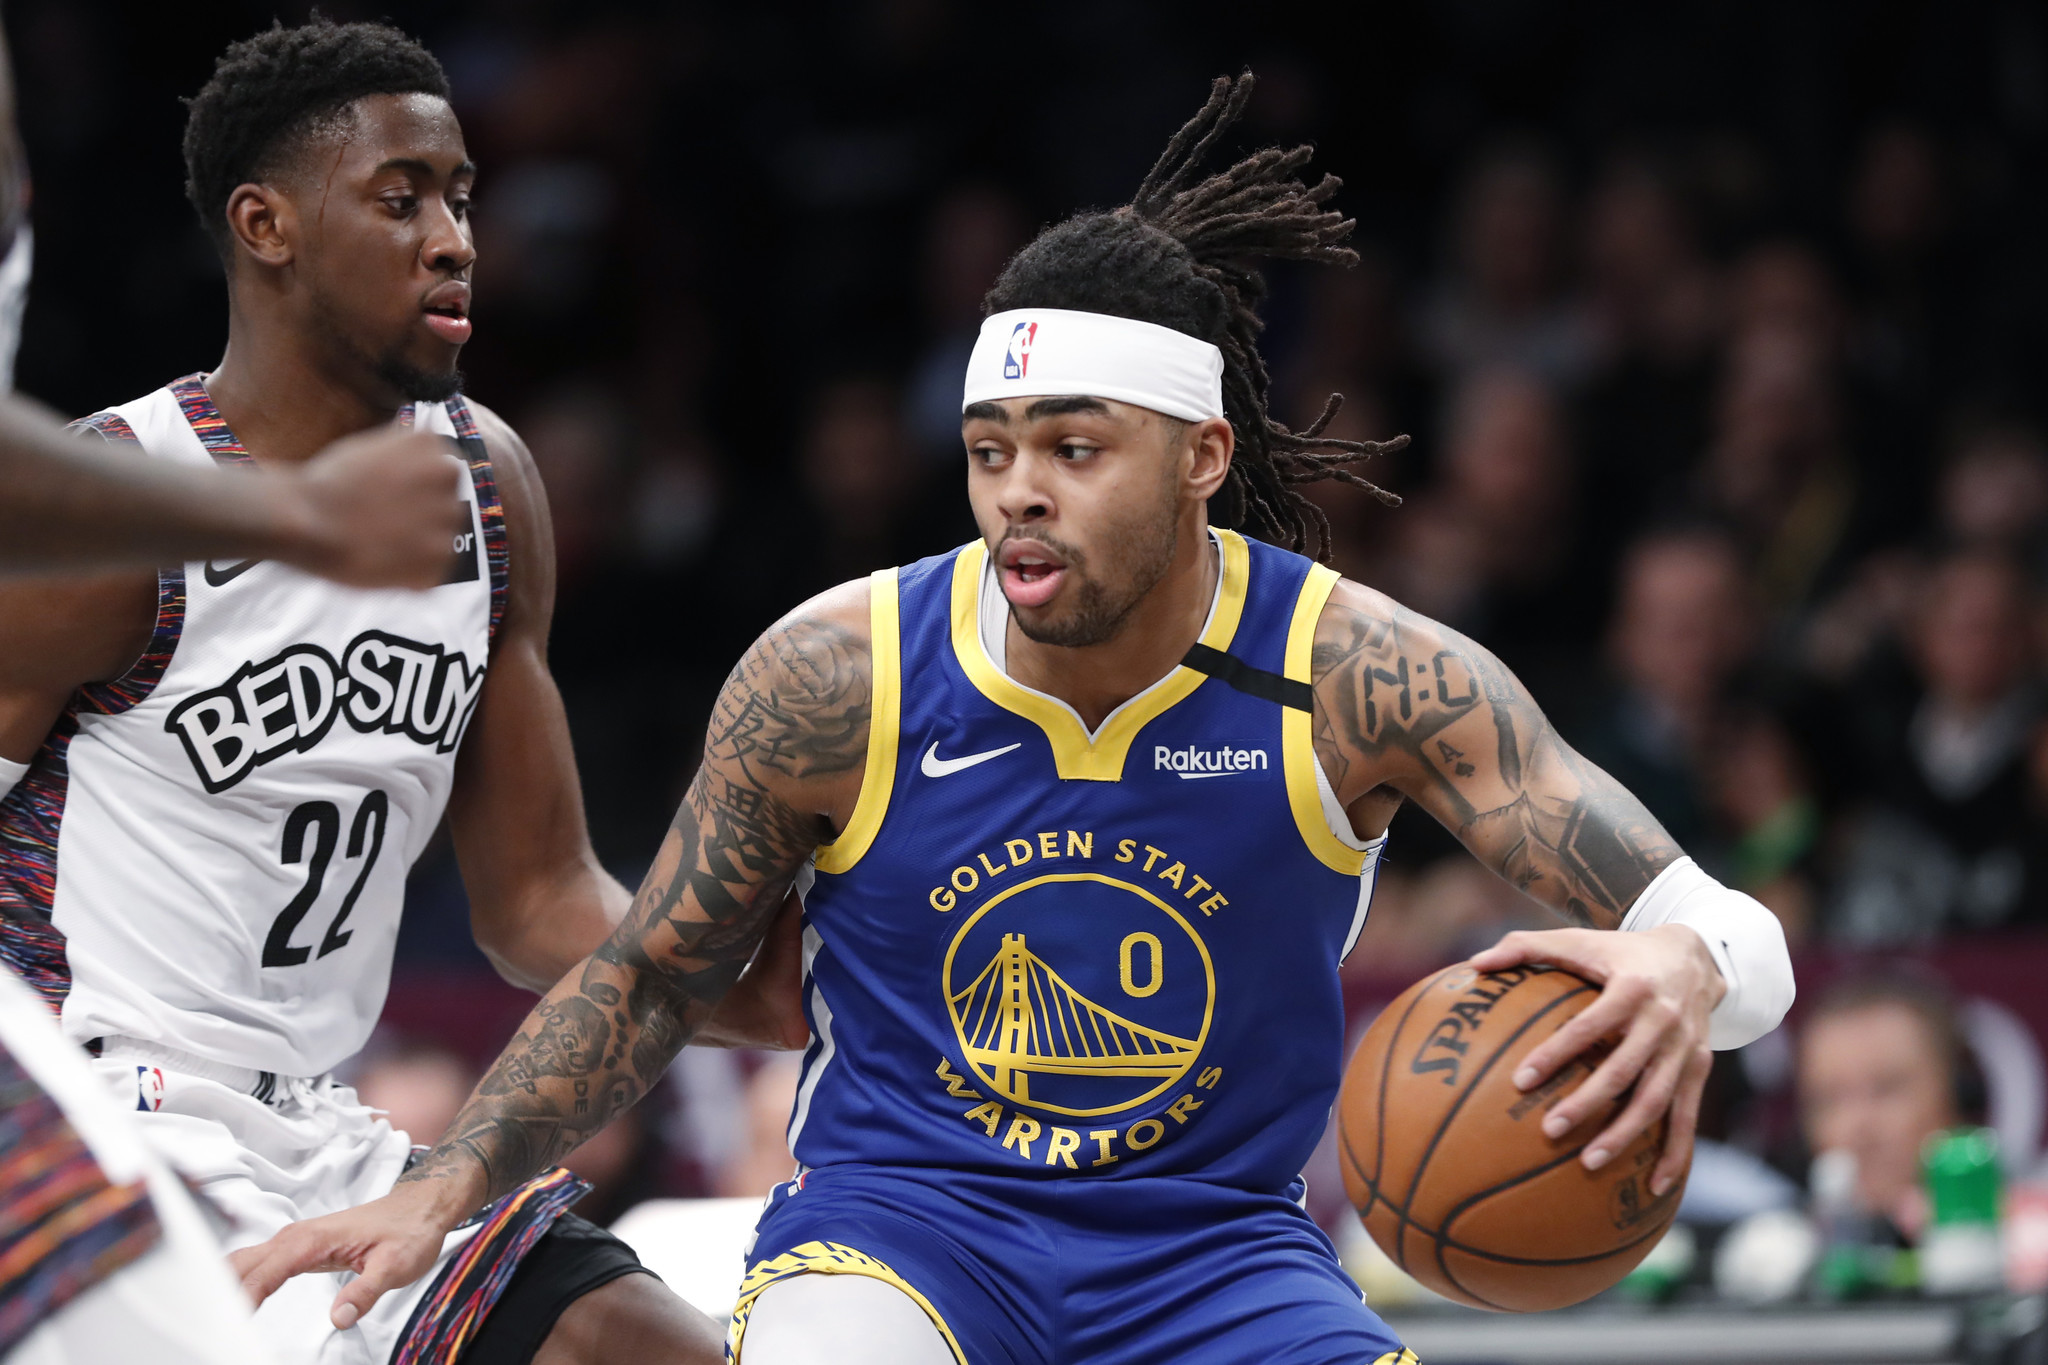 Nets enjoy an easy win over the lowly Warriors as D'Angelo Russell returns to Brooklyn